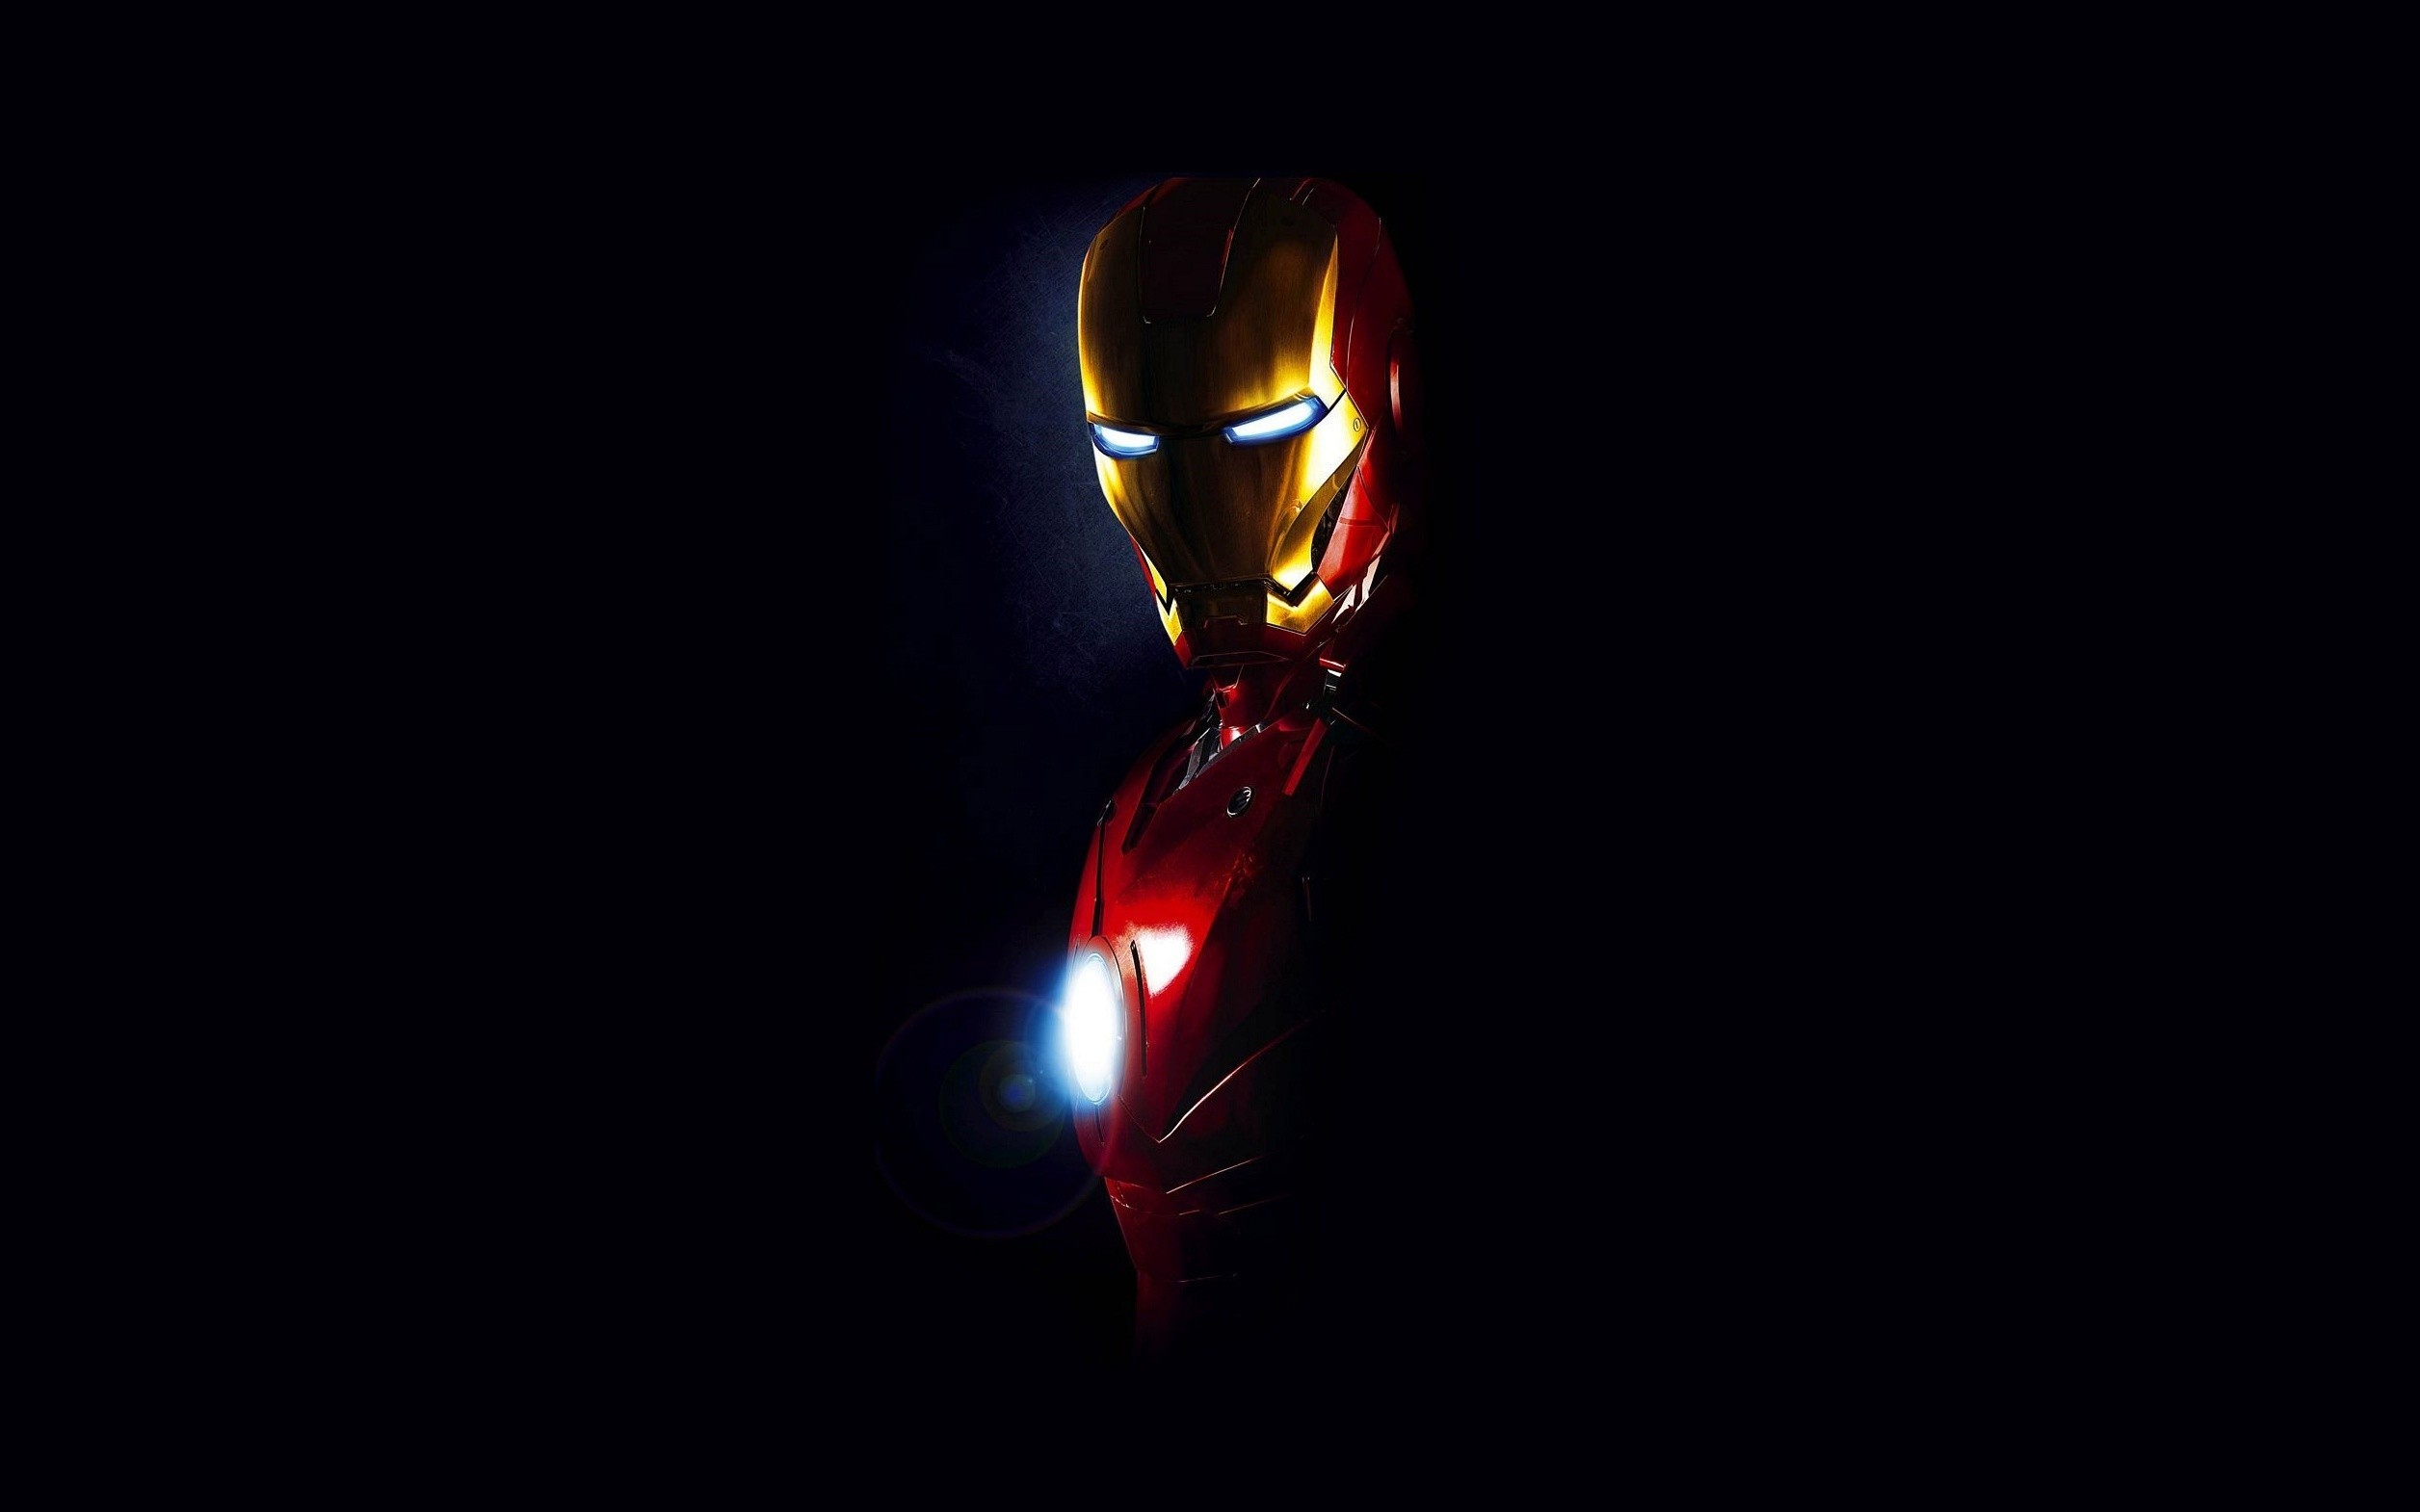 Iron man 2 films fond noir papier peint - Iron man 2 telecharger ...